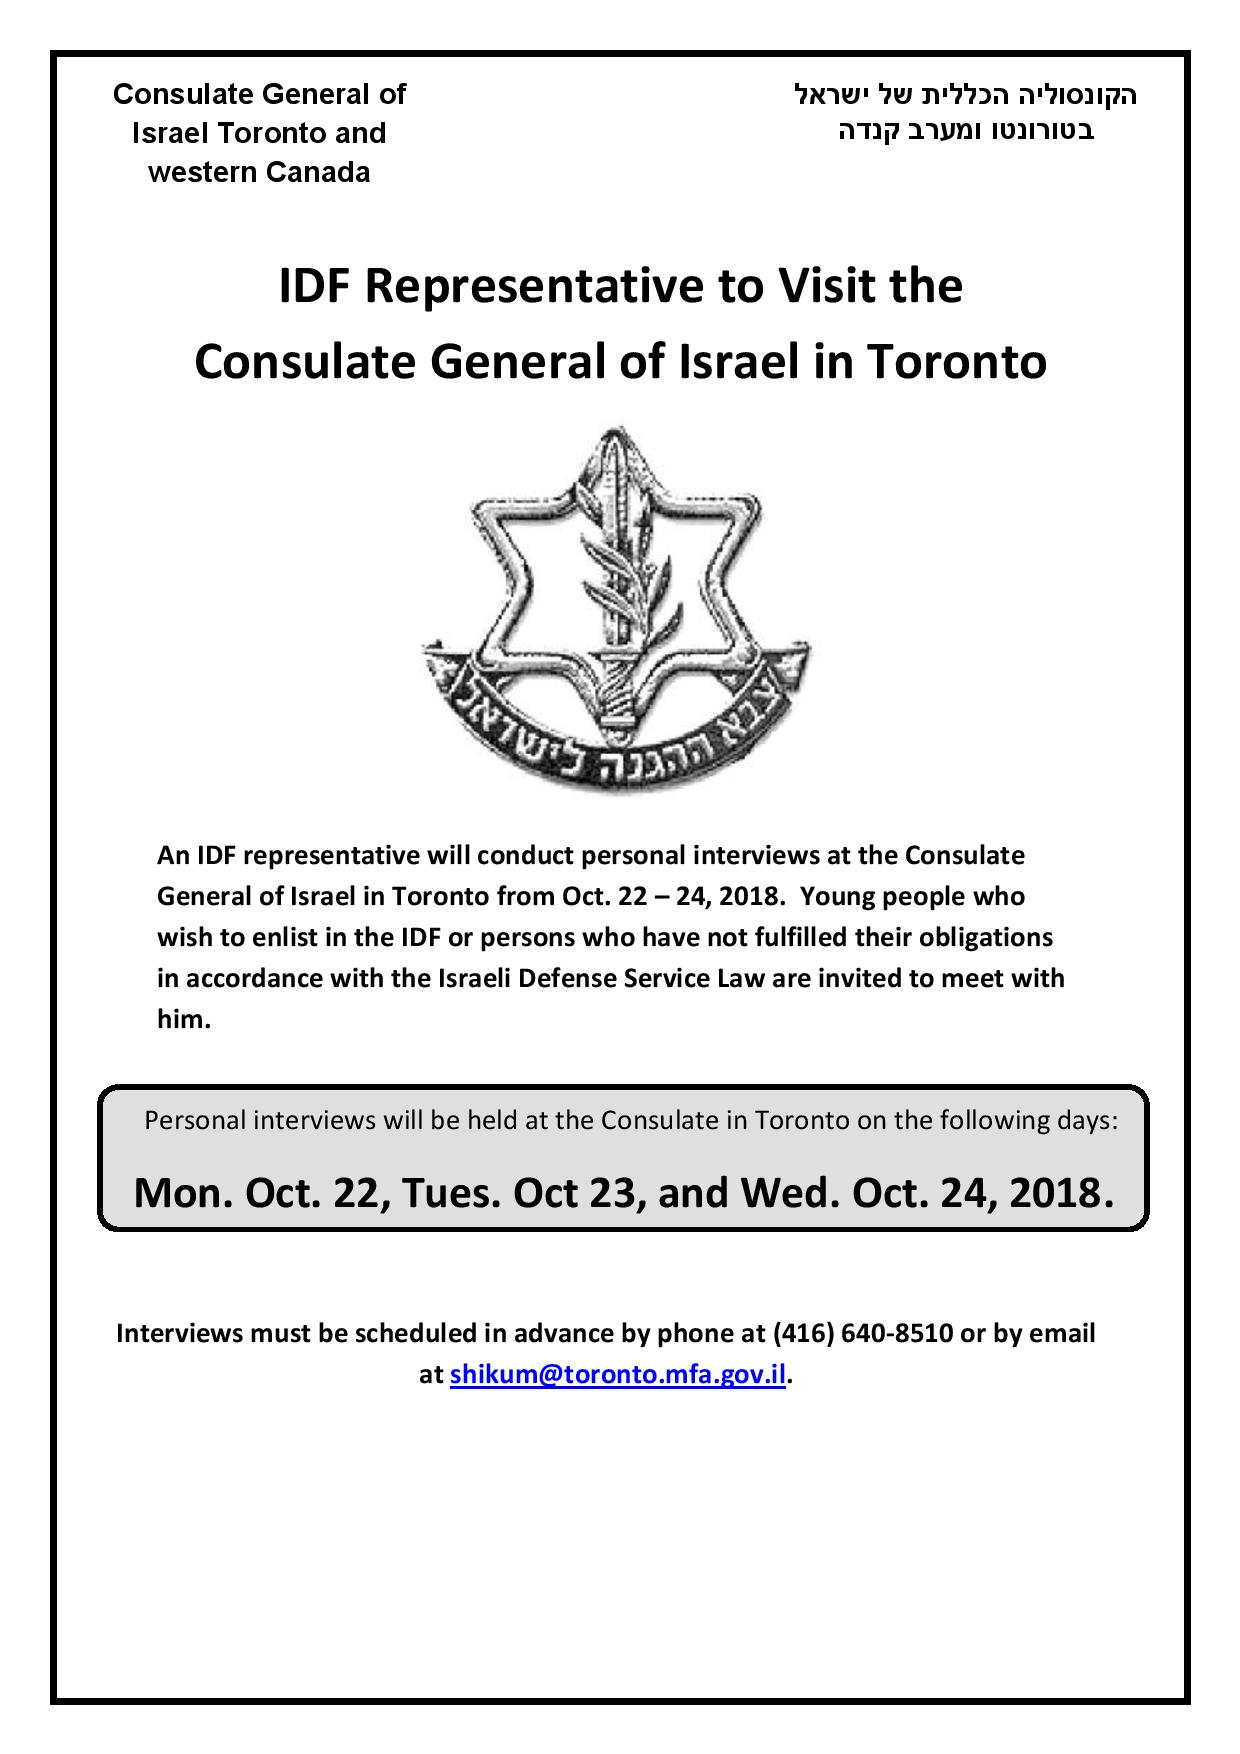 Consulate General of Israel in Toronto